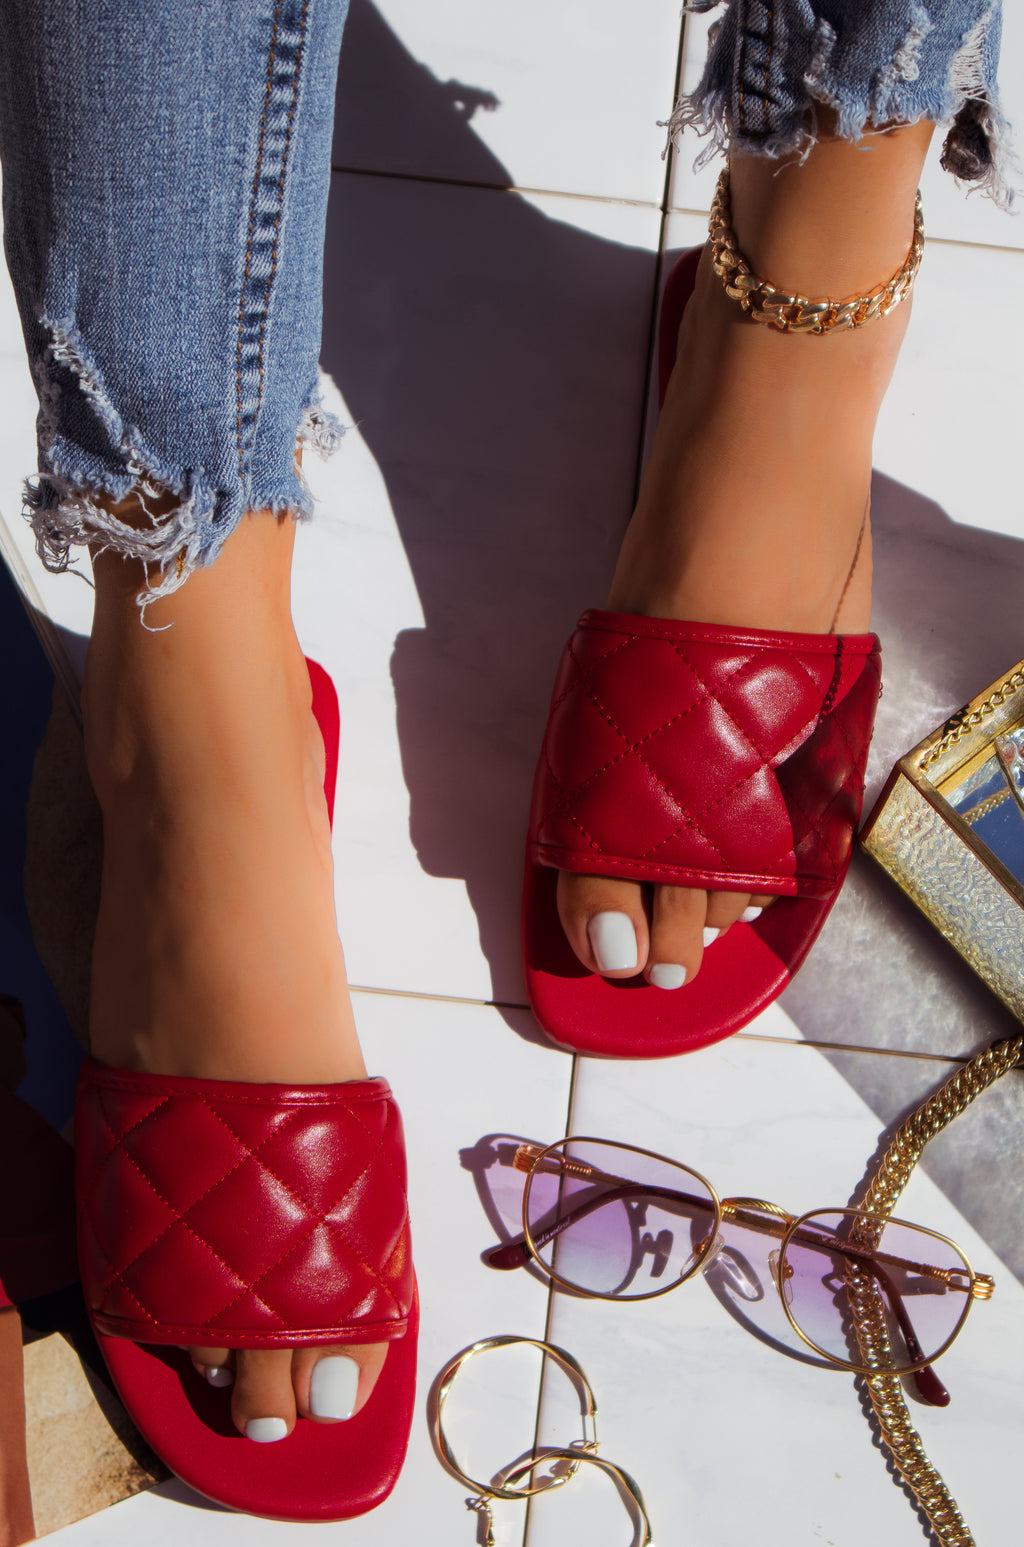 Amour - Red Sandals